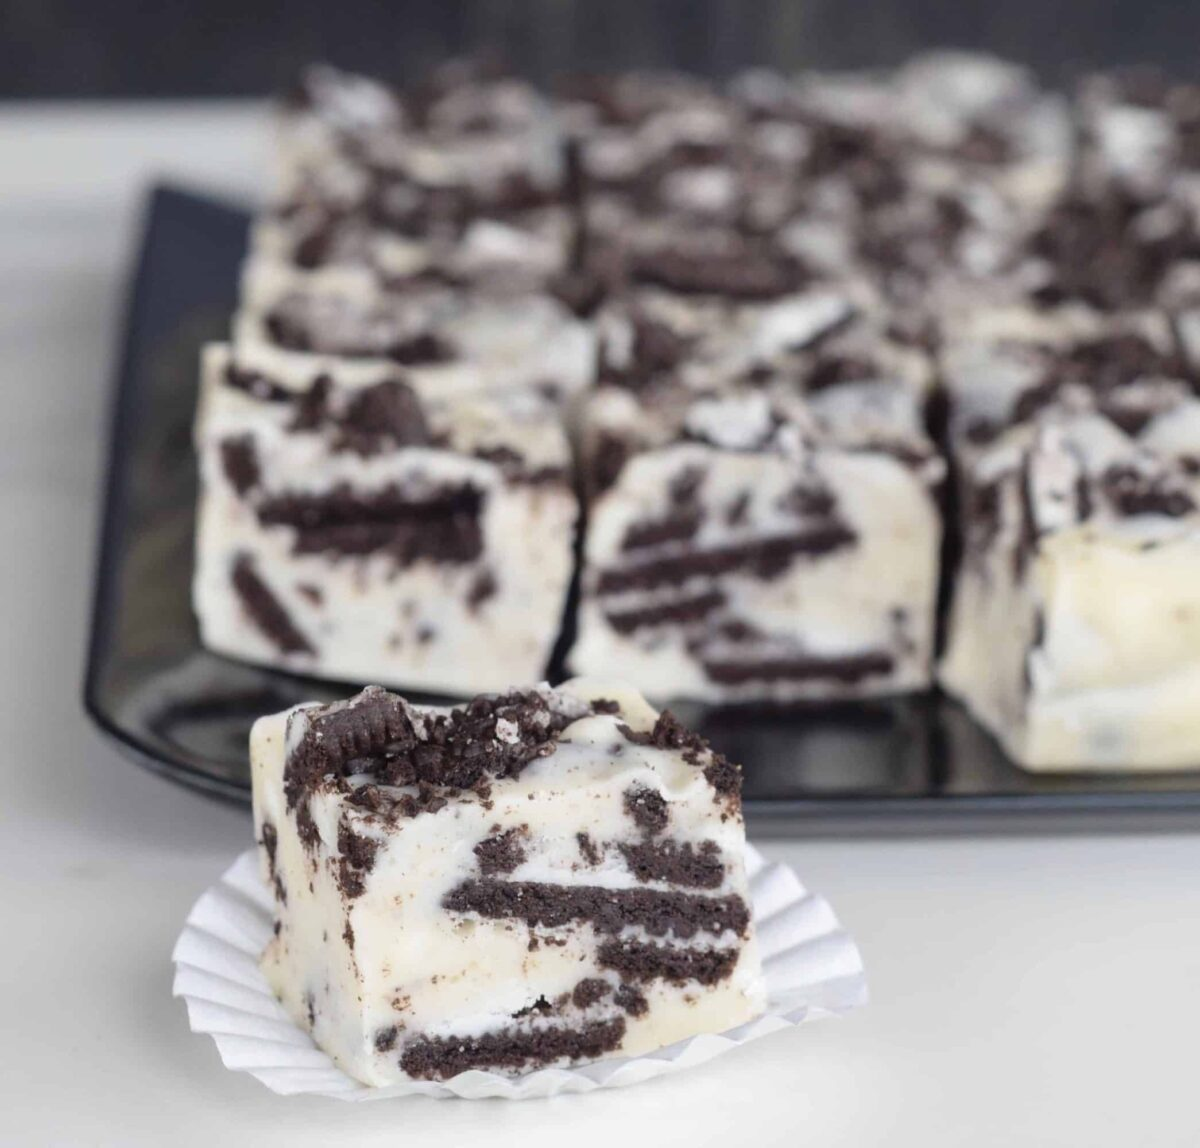 Cookies n Cream White Chocolate Fudge cut into squares revealing the yummy crushed Oreo cookies